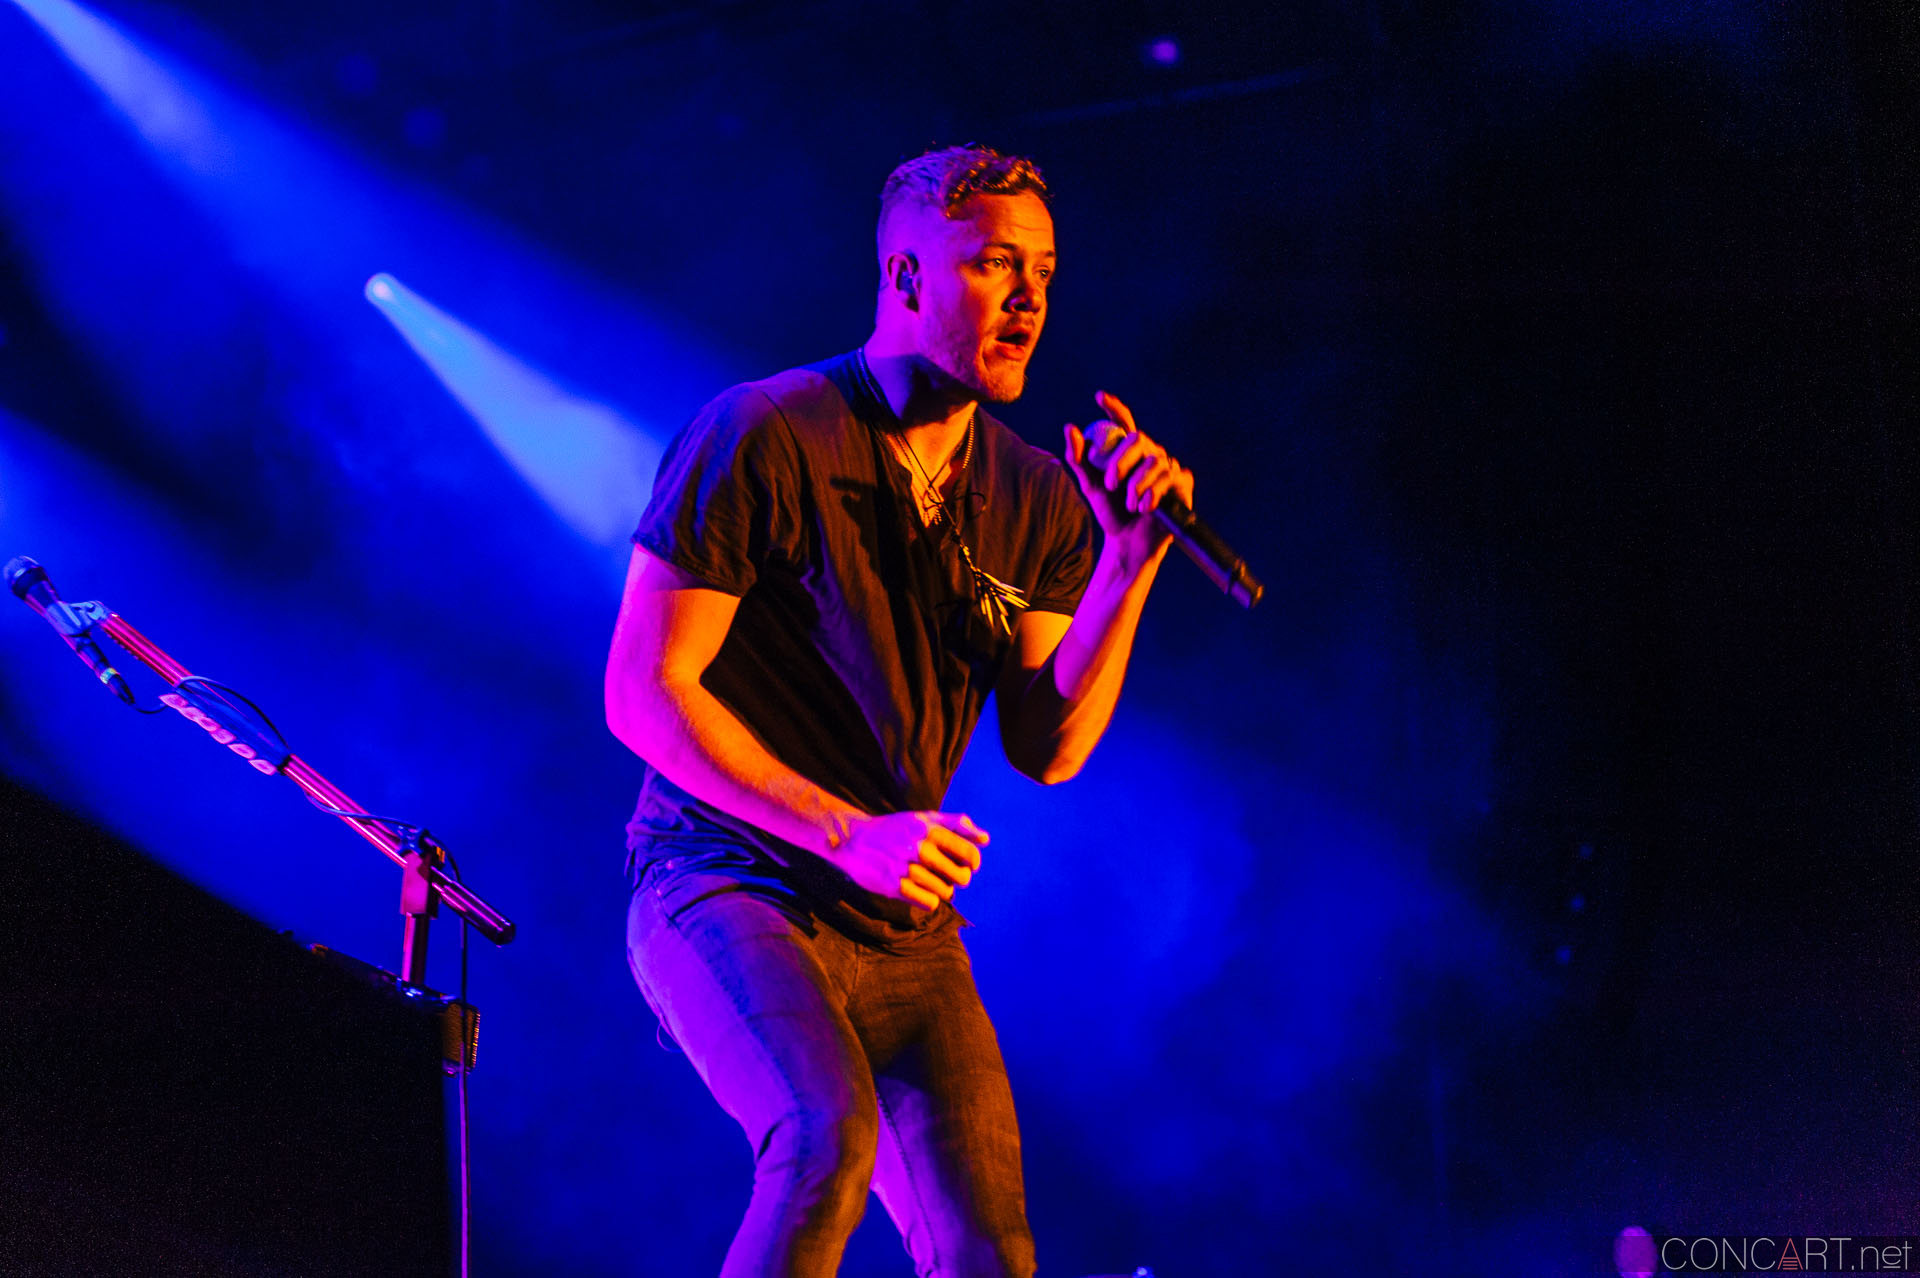 imagine_dragons_live_the_lawn_indianapolis_2013-39